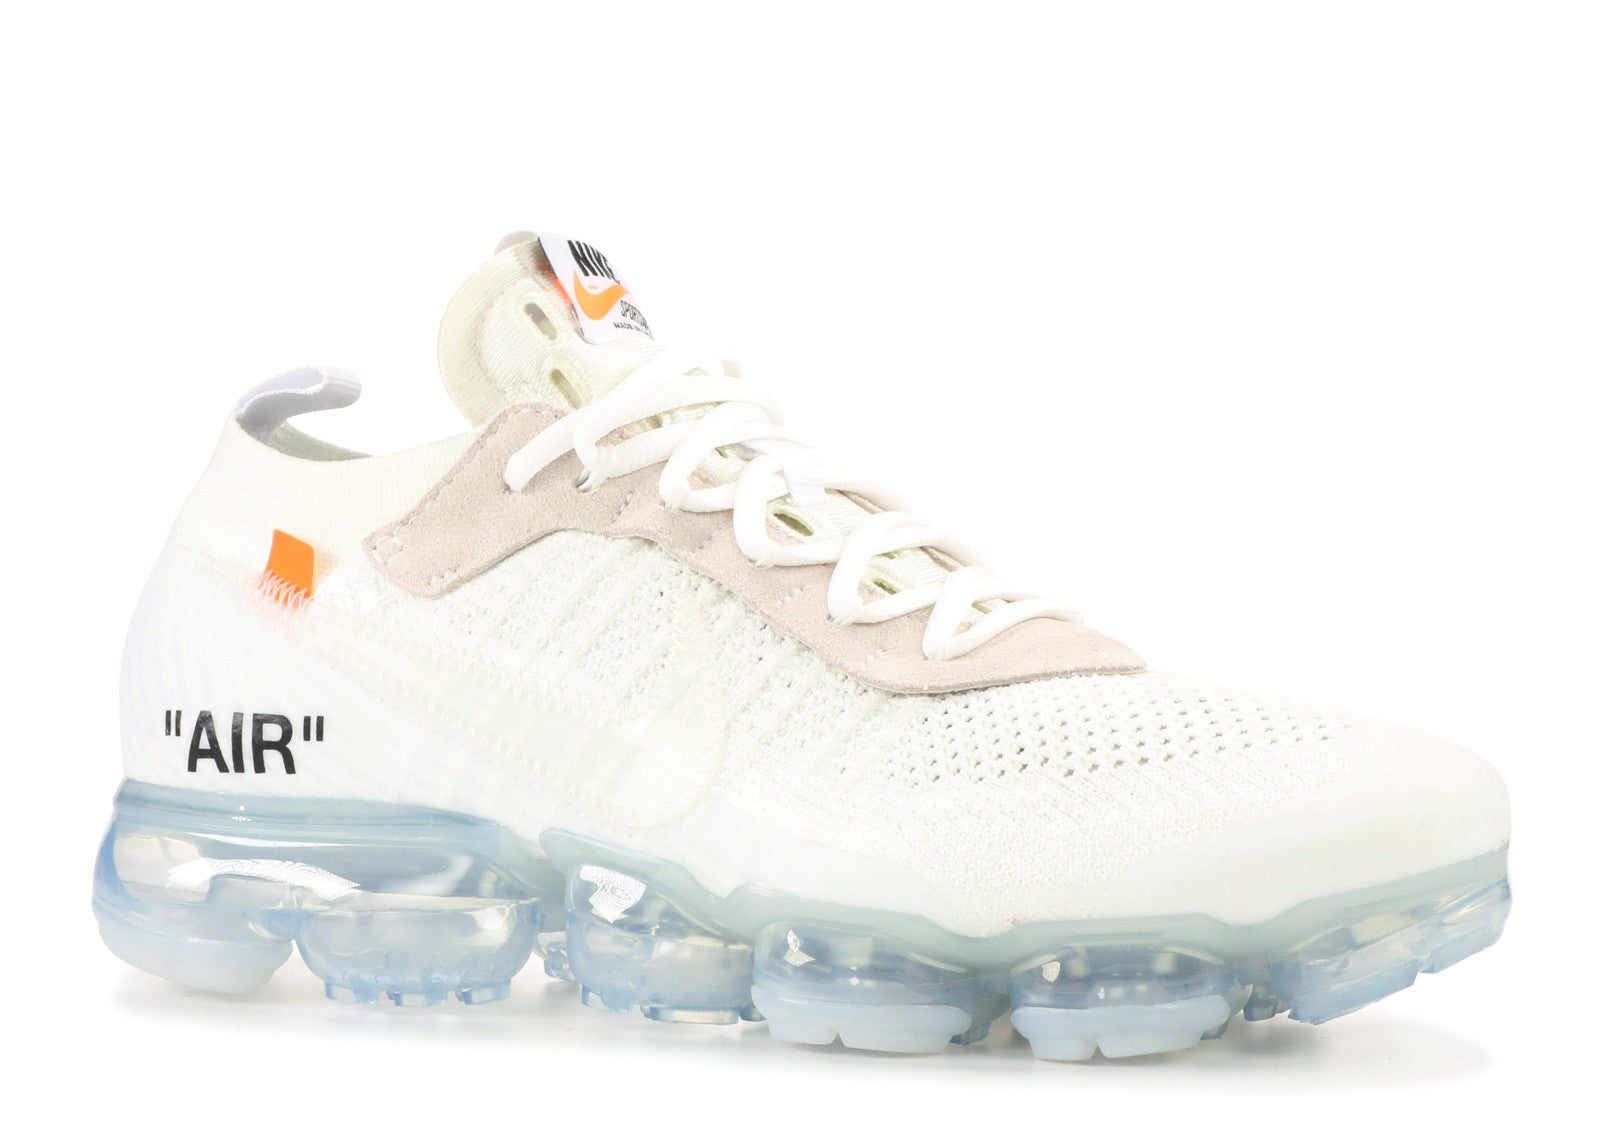 Off White x Nike Air Vapourmax White/Orange/Transparent